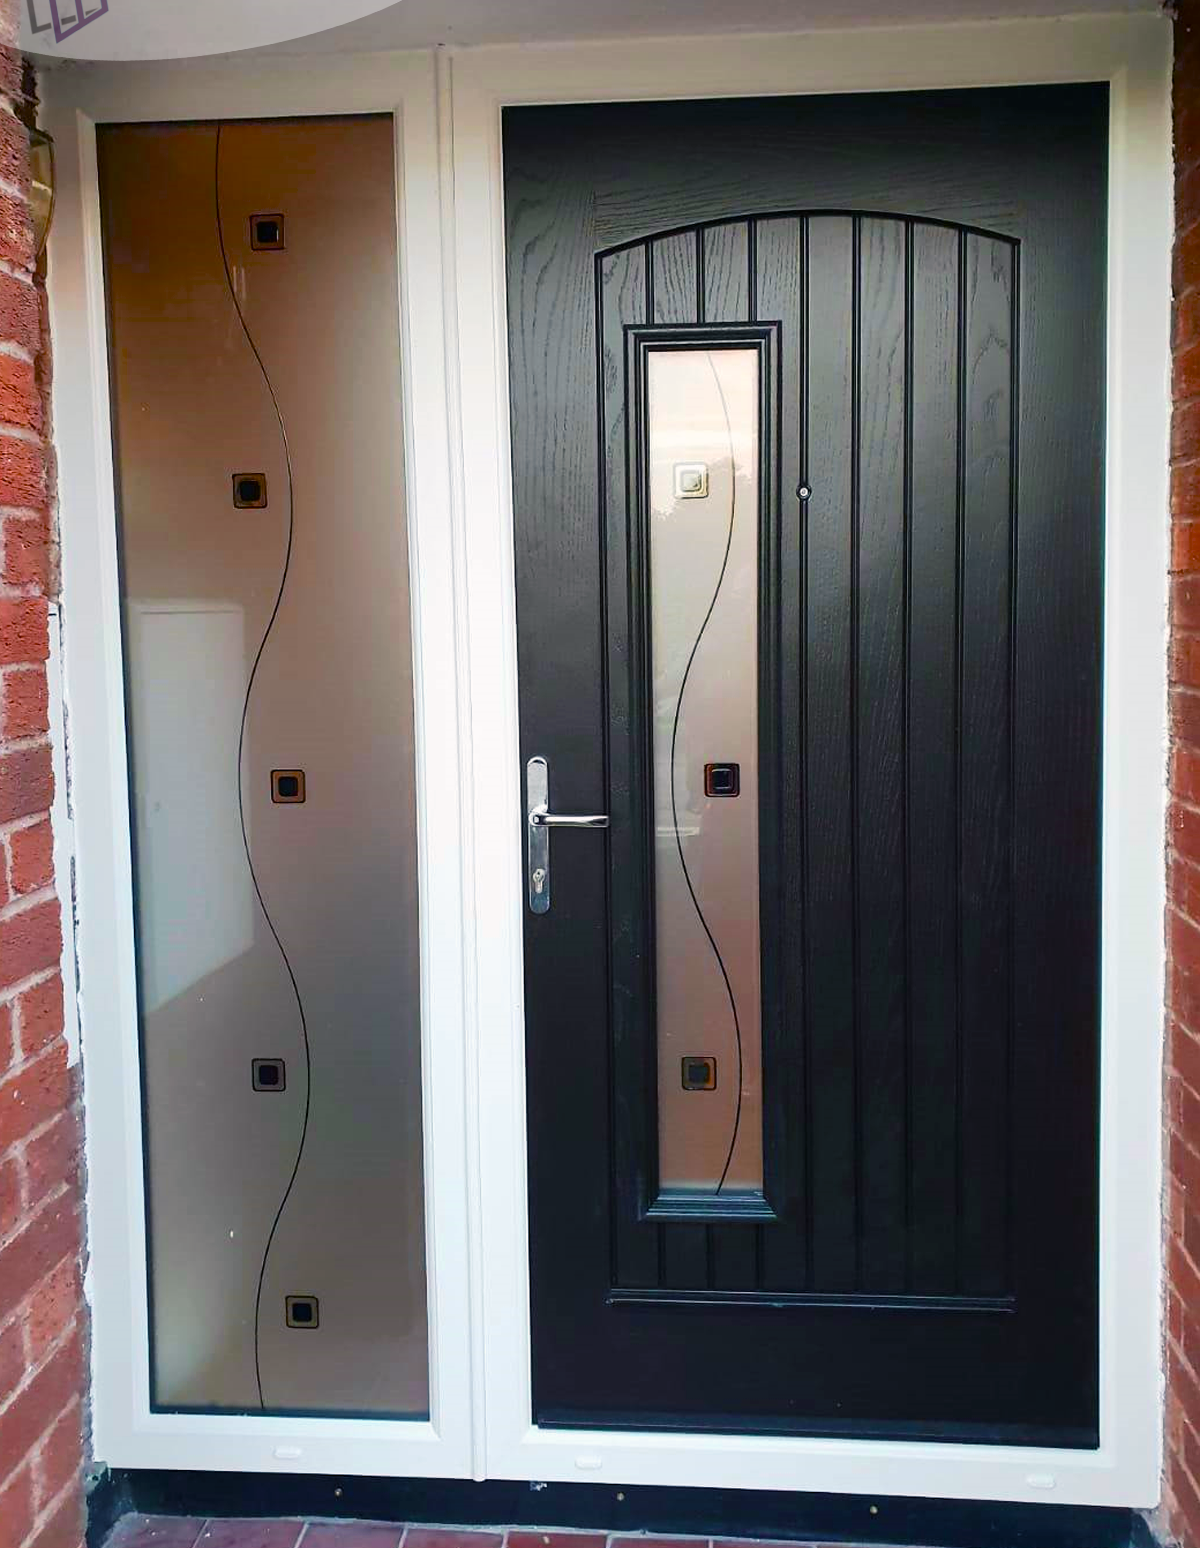 Palladio ROME door in Bog Oak with one sidelight, chrome lever lever handles and TG132 glass